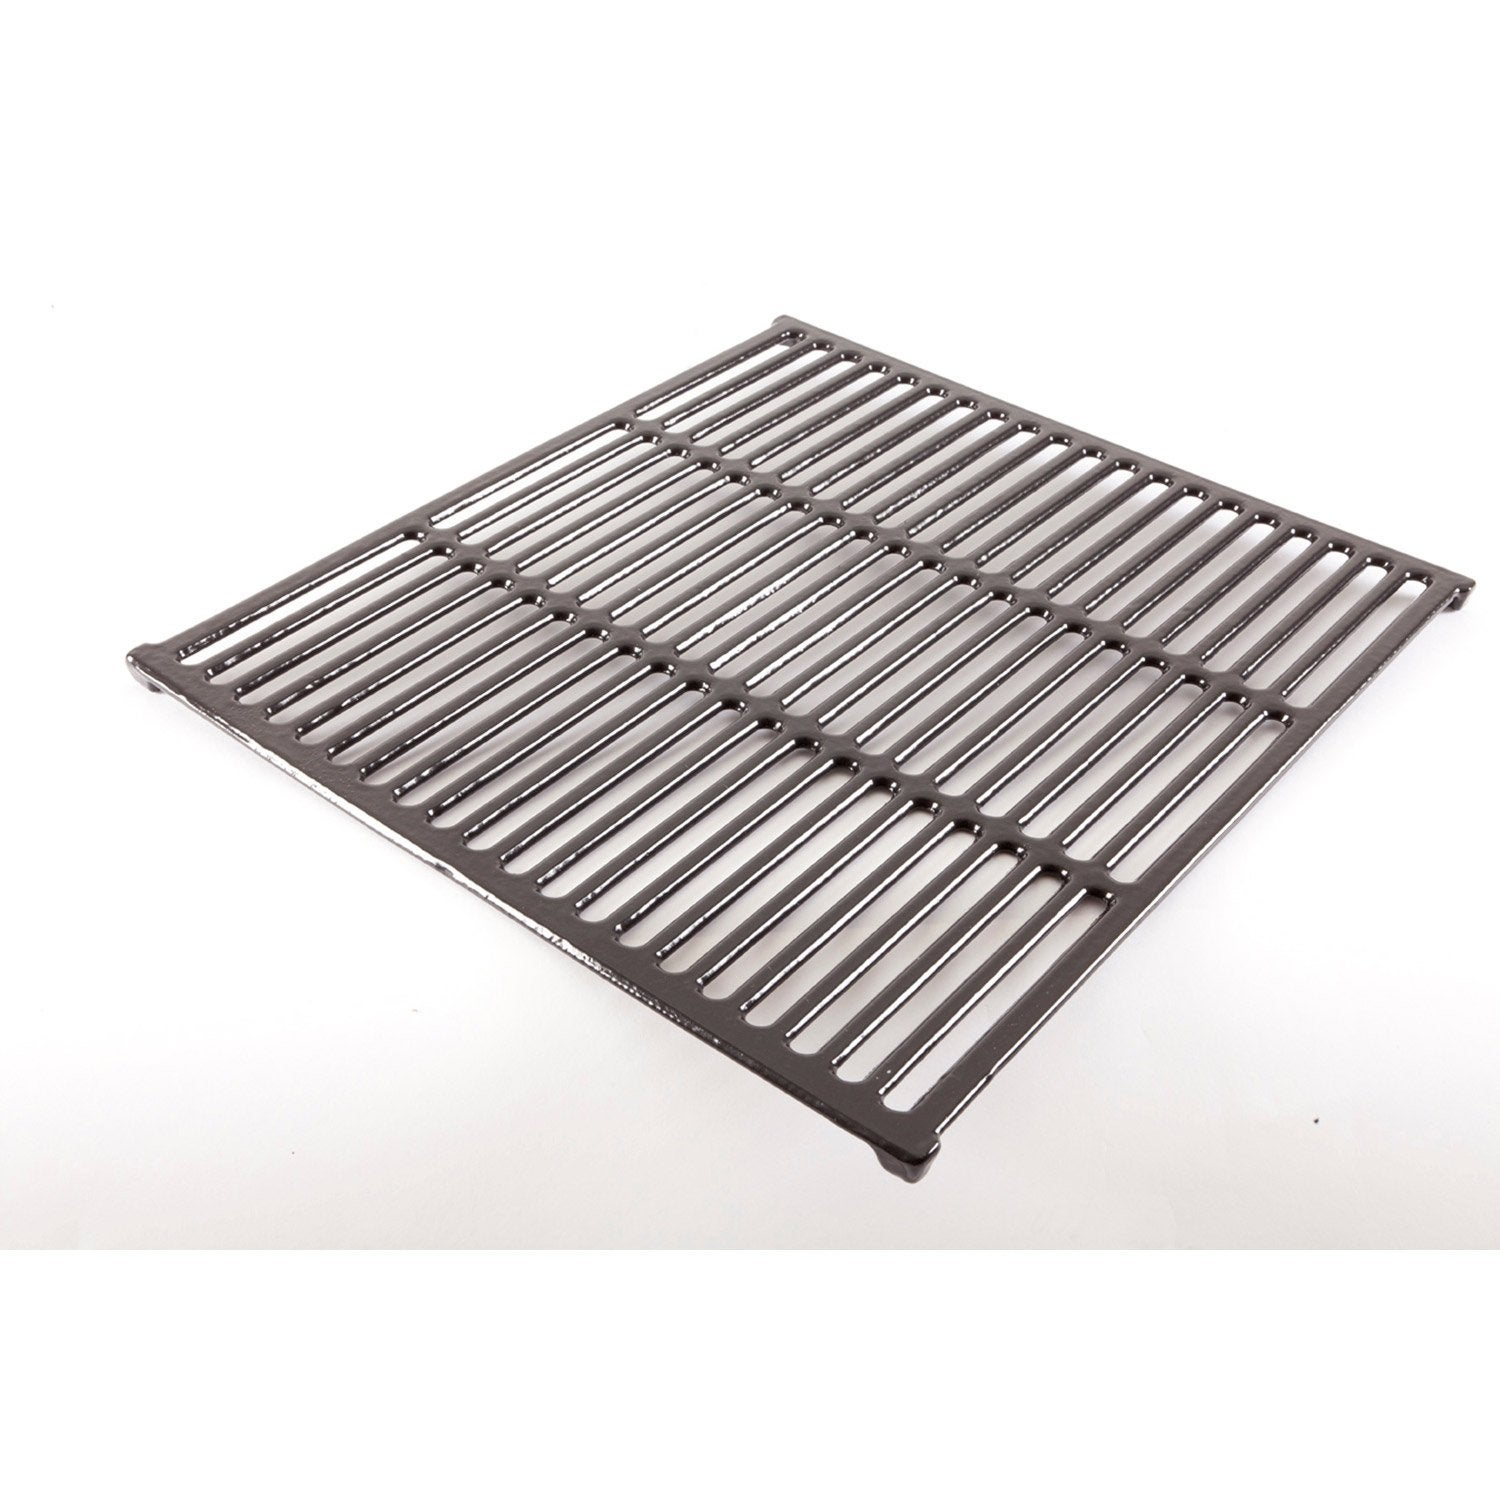 Grille naterial 5400 grl4 leroy merlin - Grille barbecue leroy merlin ...